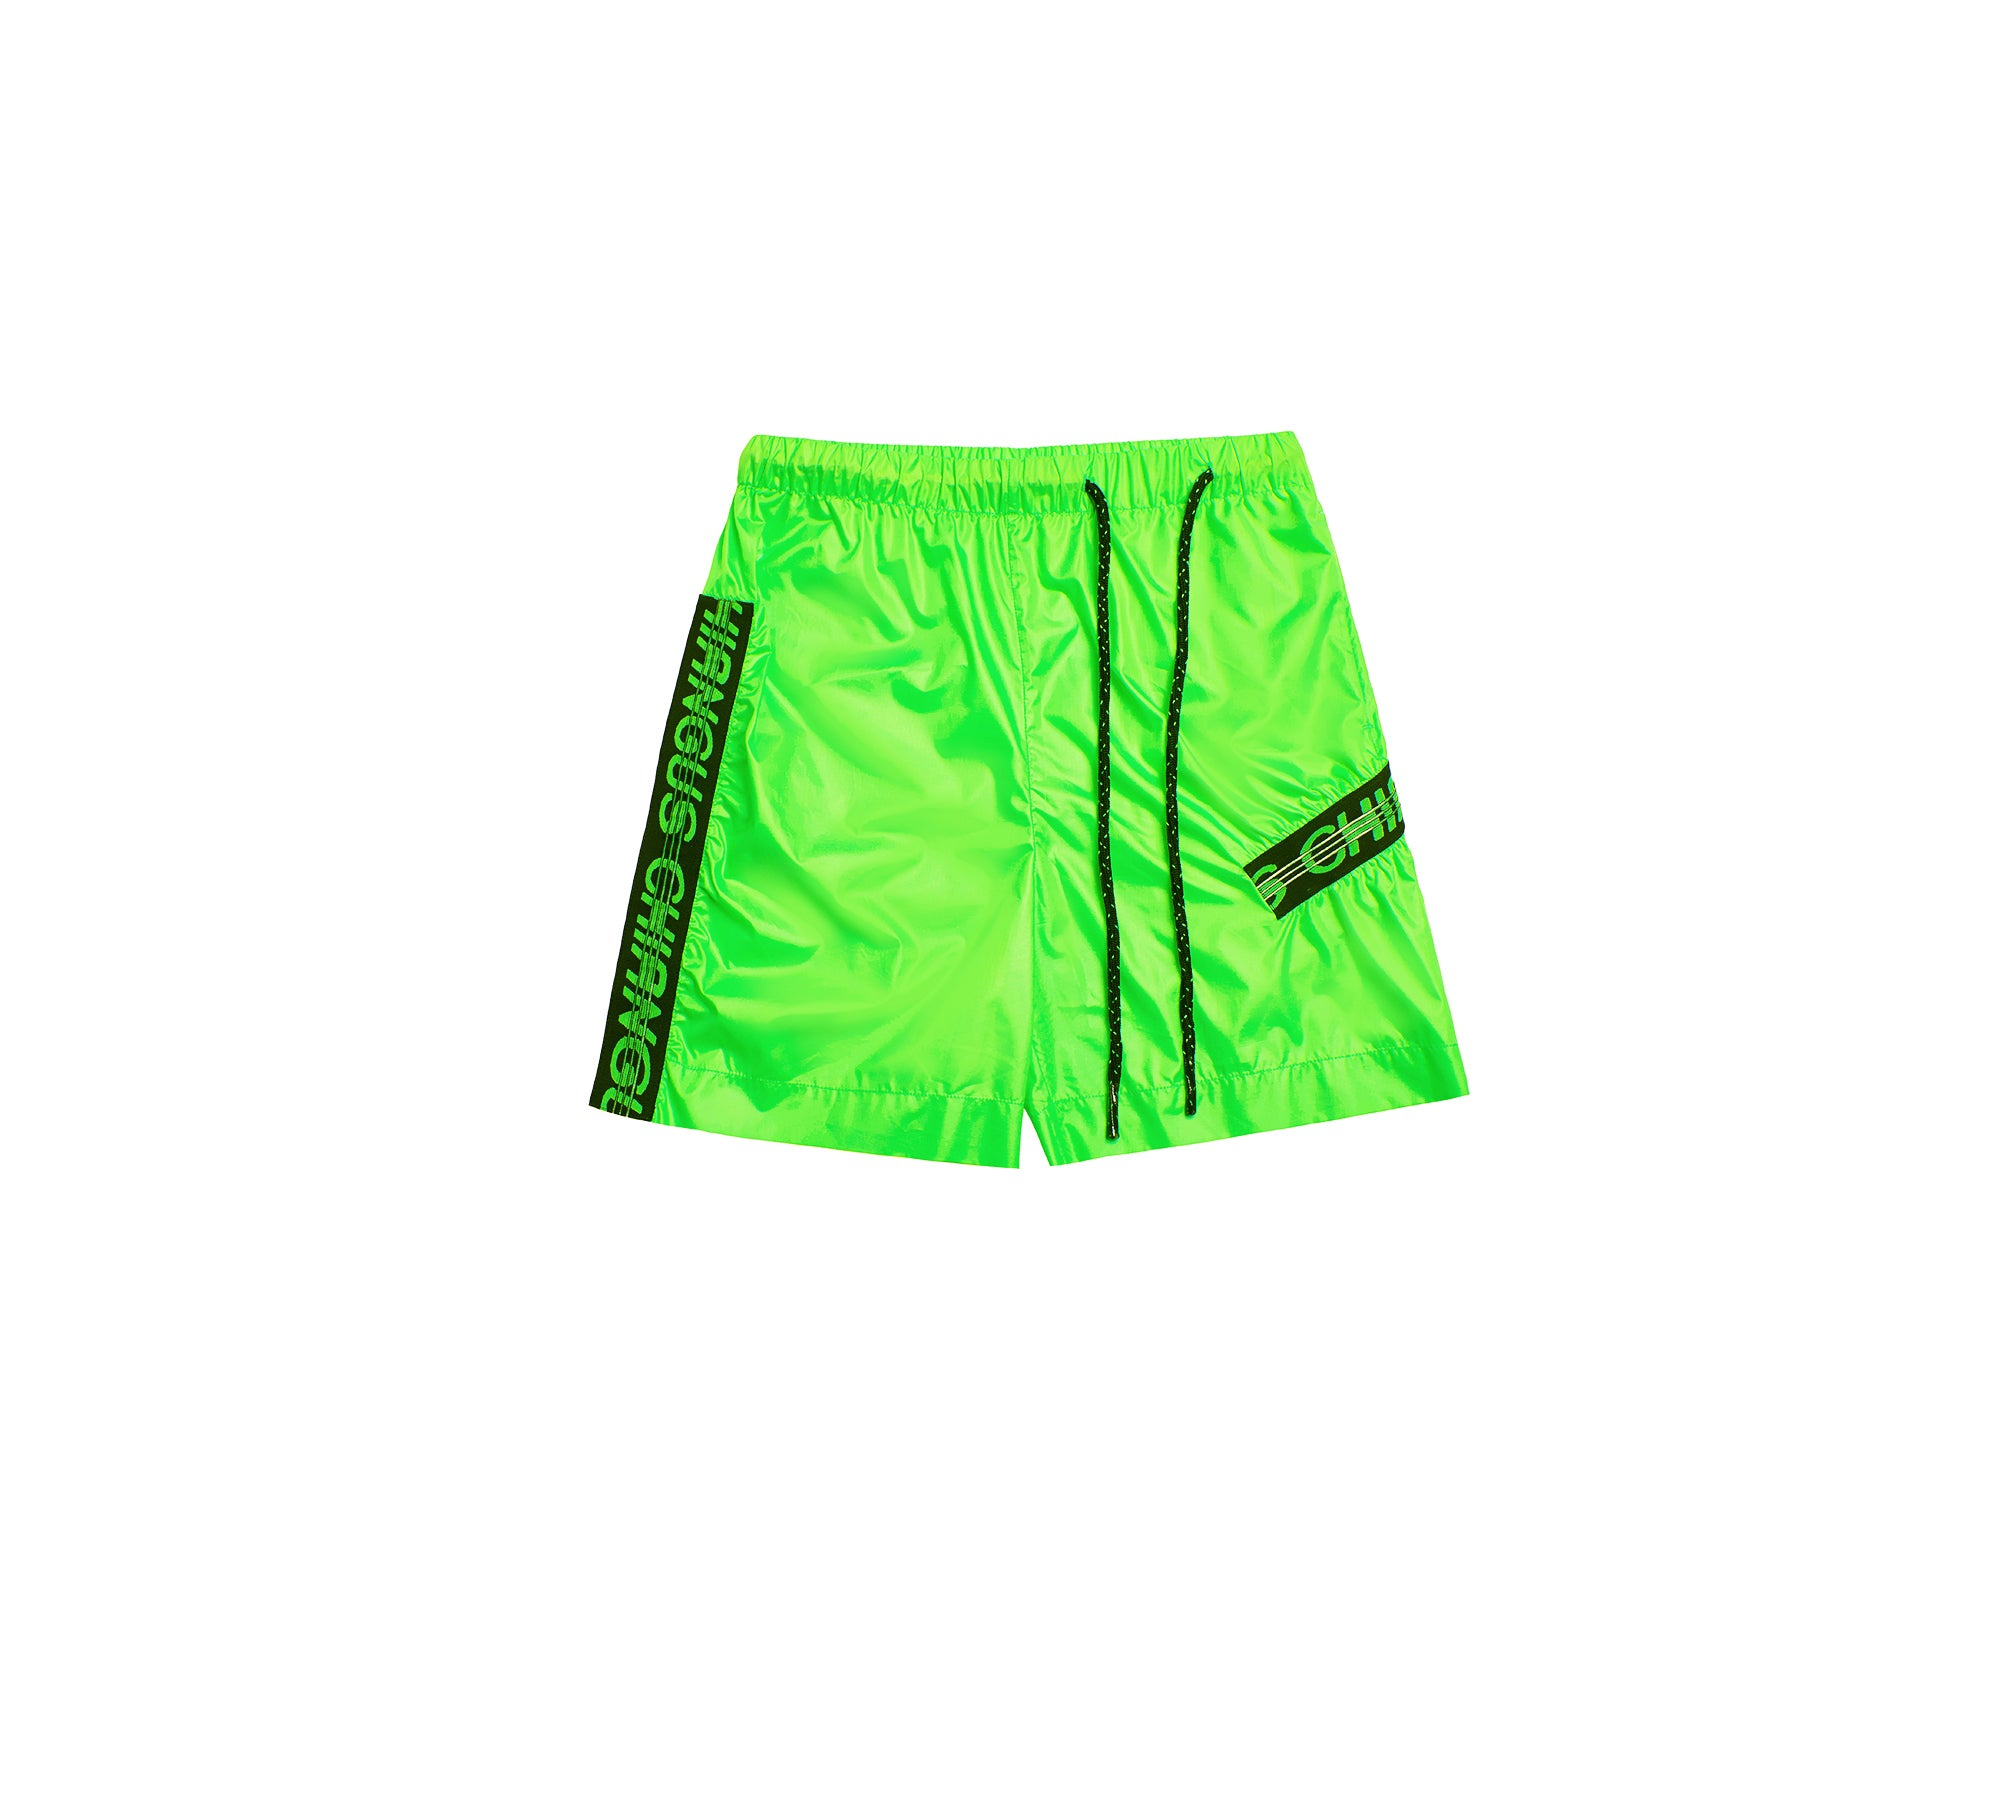 ELASTIC RIBBON CASUAL SPORTY SHORTS